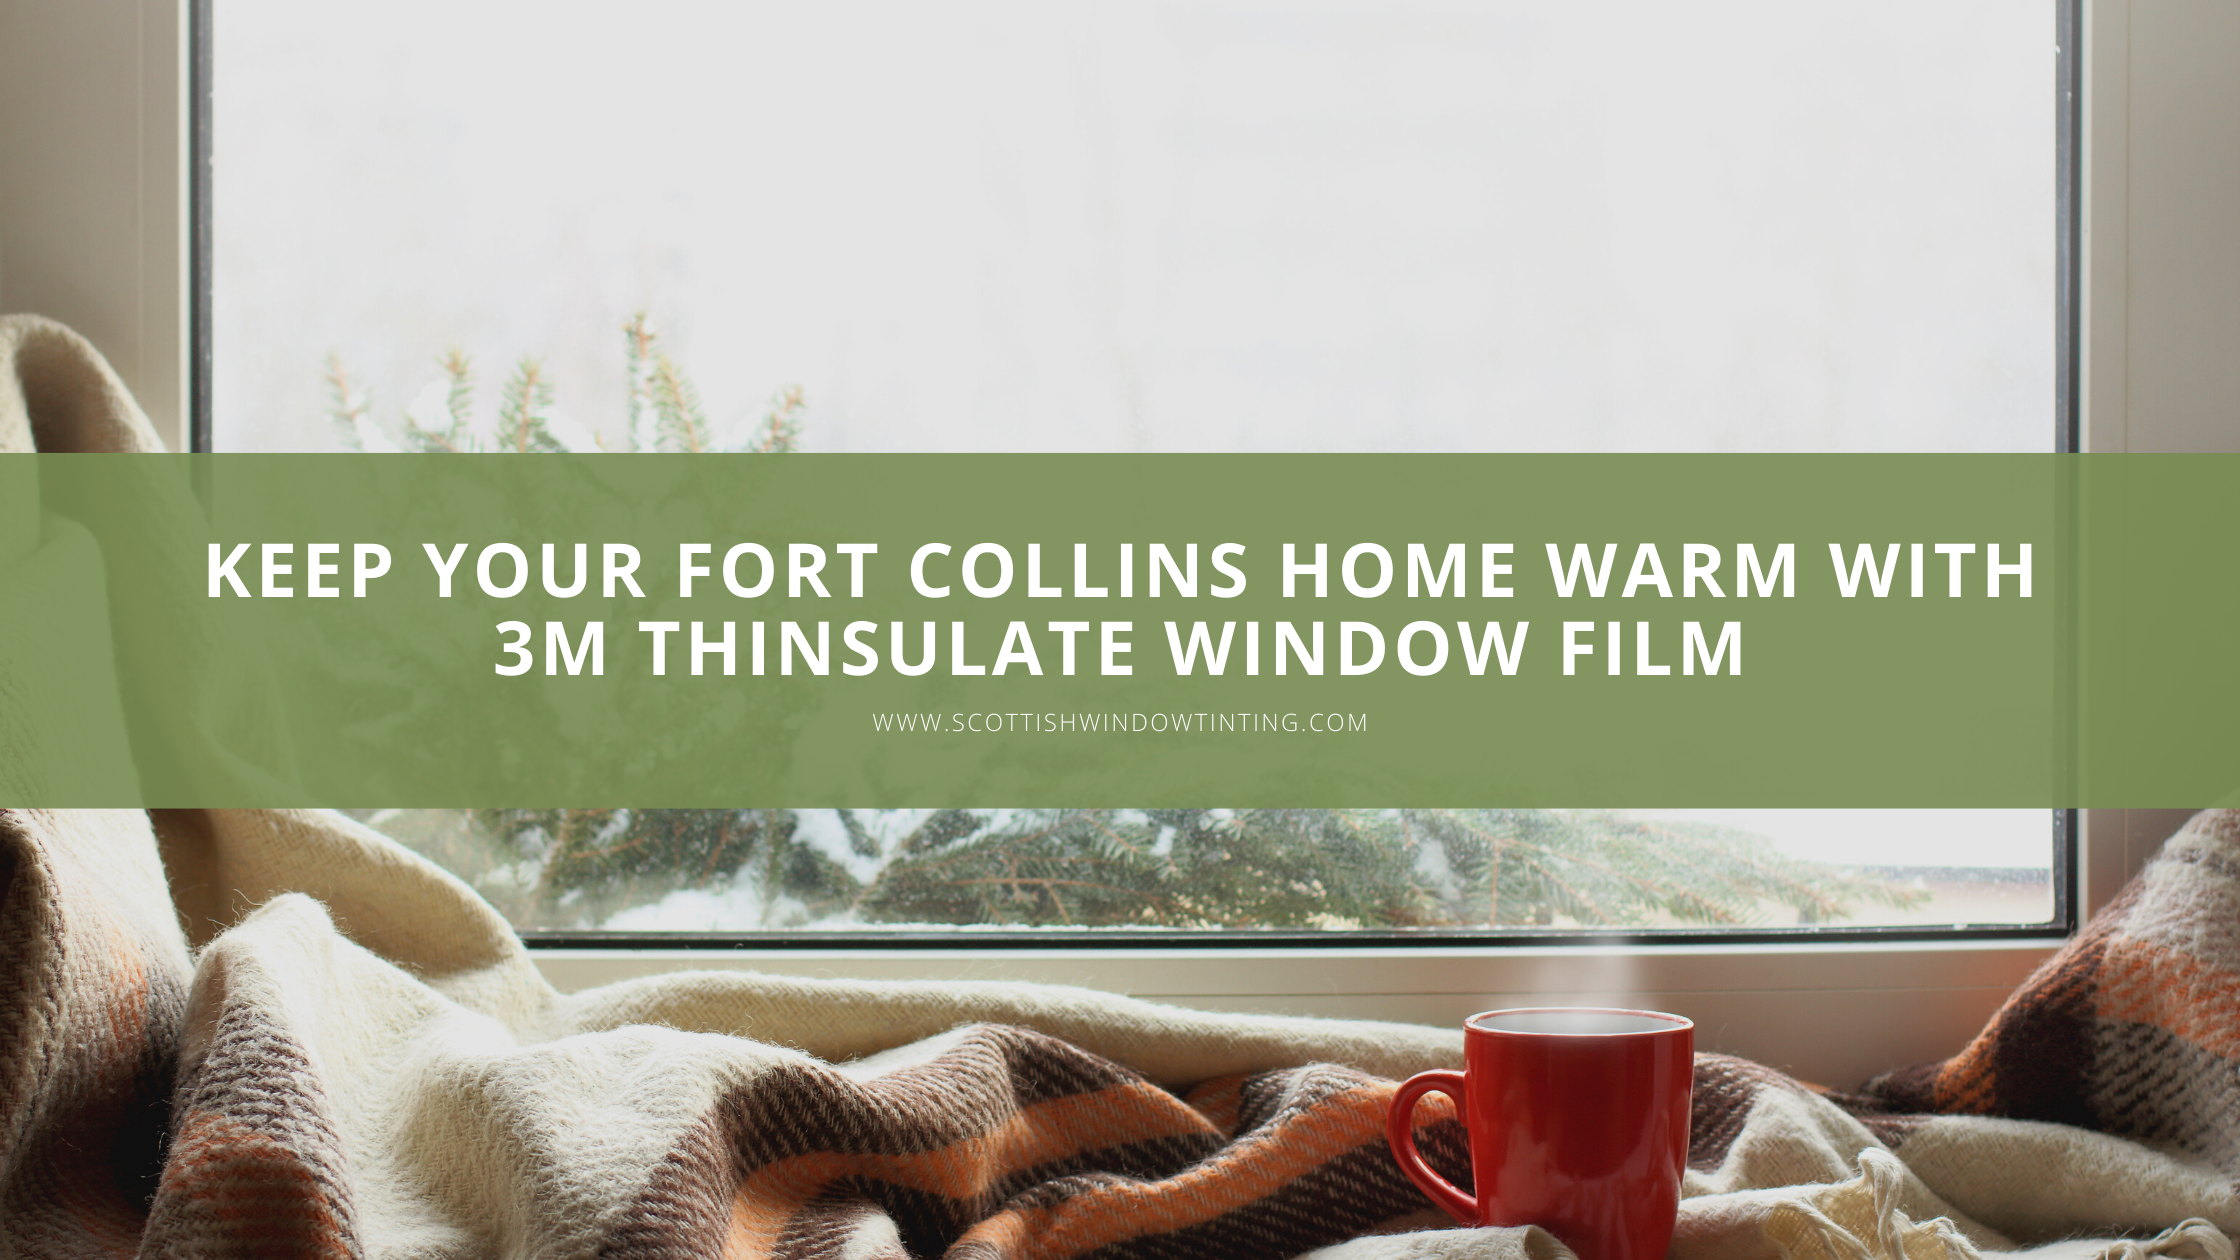 Keep Your Fort Collins Home Warm With 3M Thinsulate Window Film